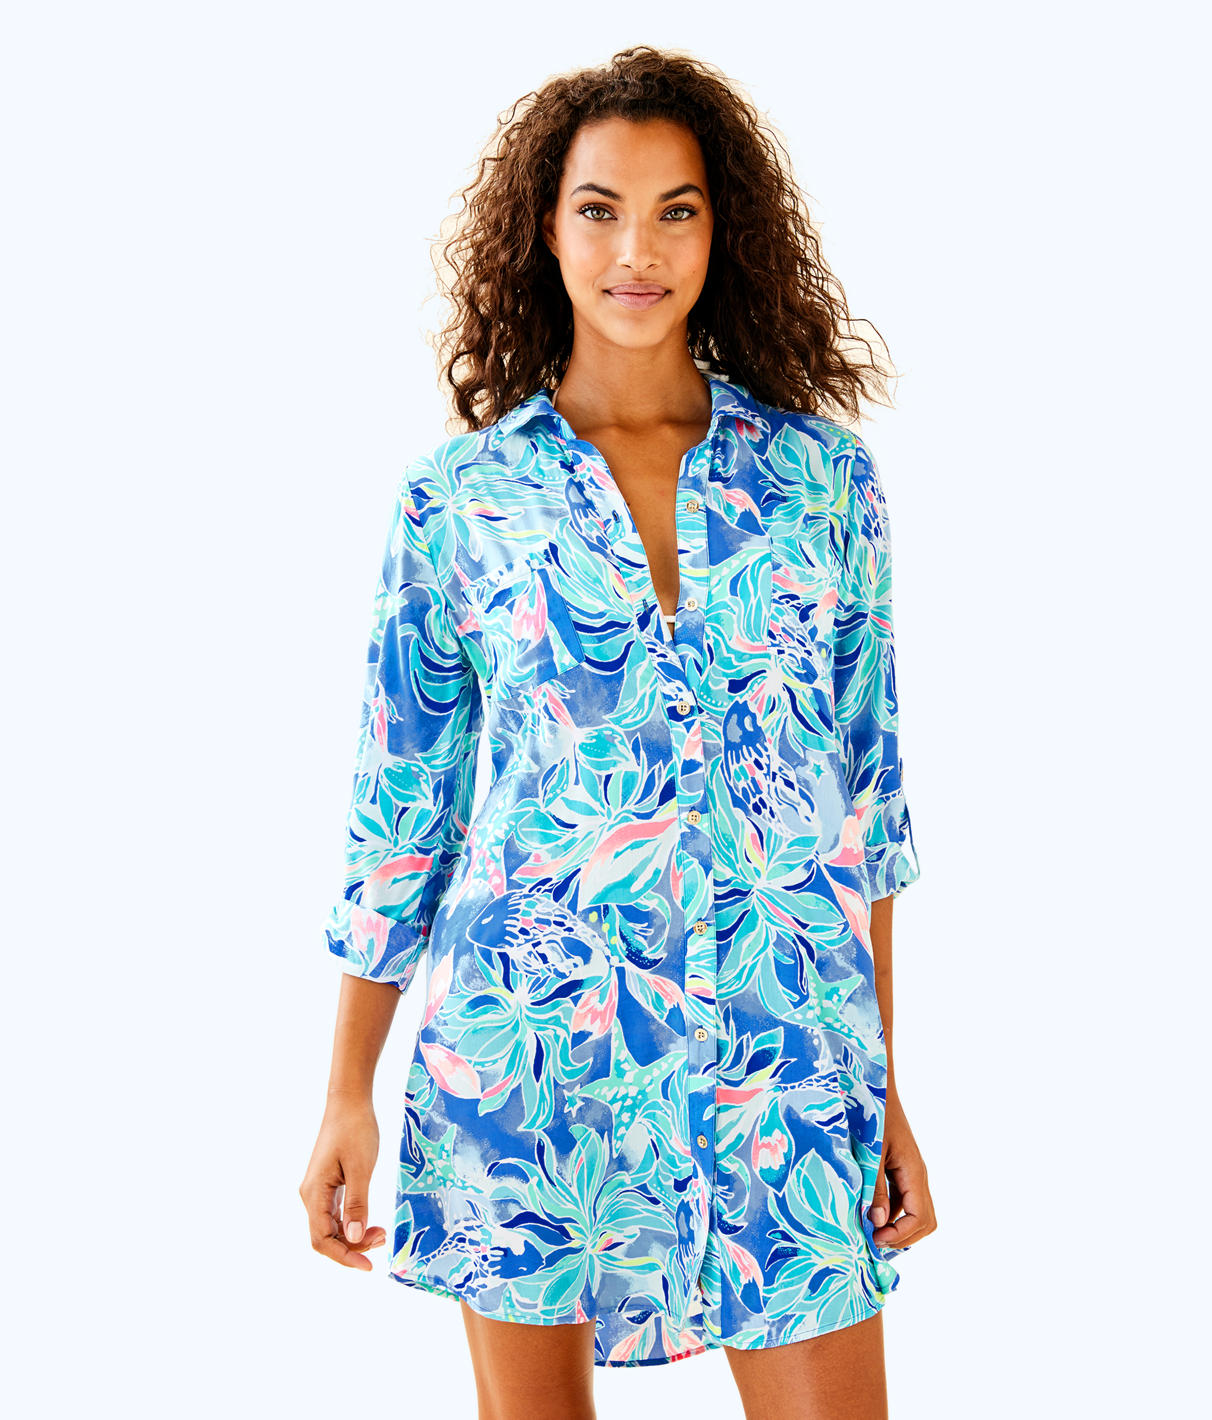 Lilly Pulitzer Lilly Pulitzer Womens Natalie Coverup